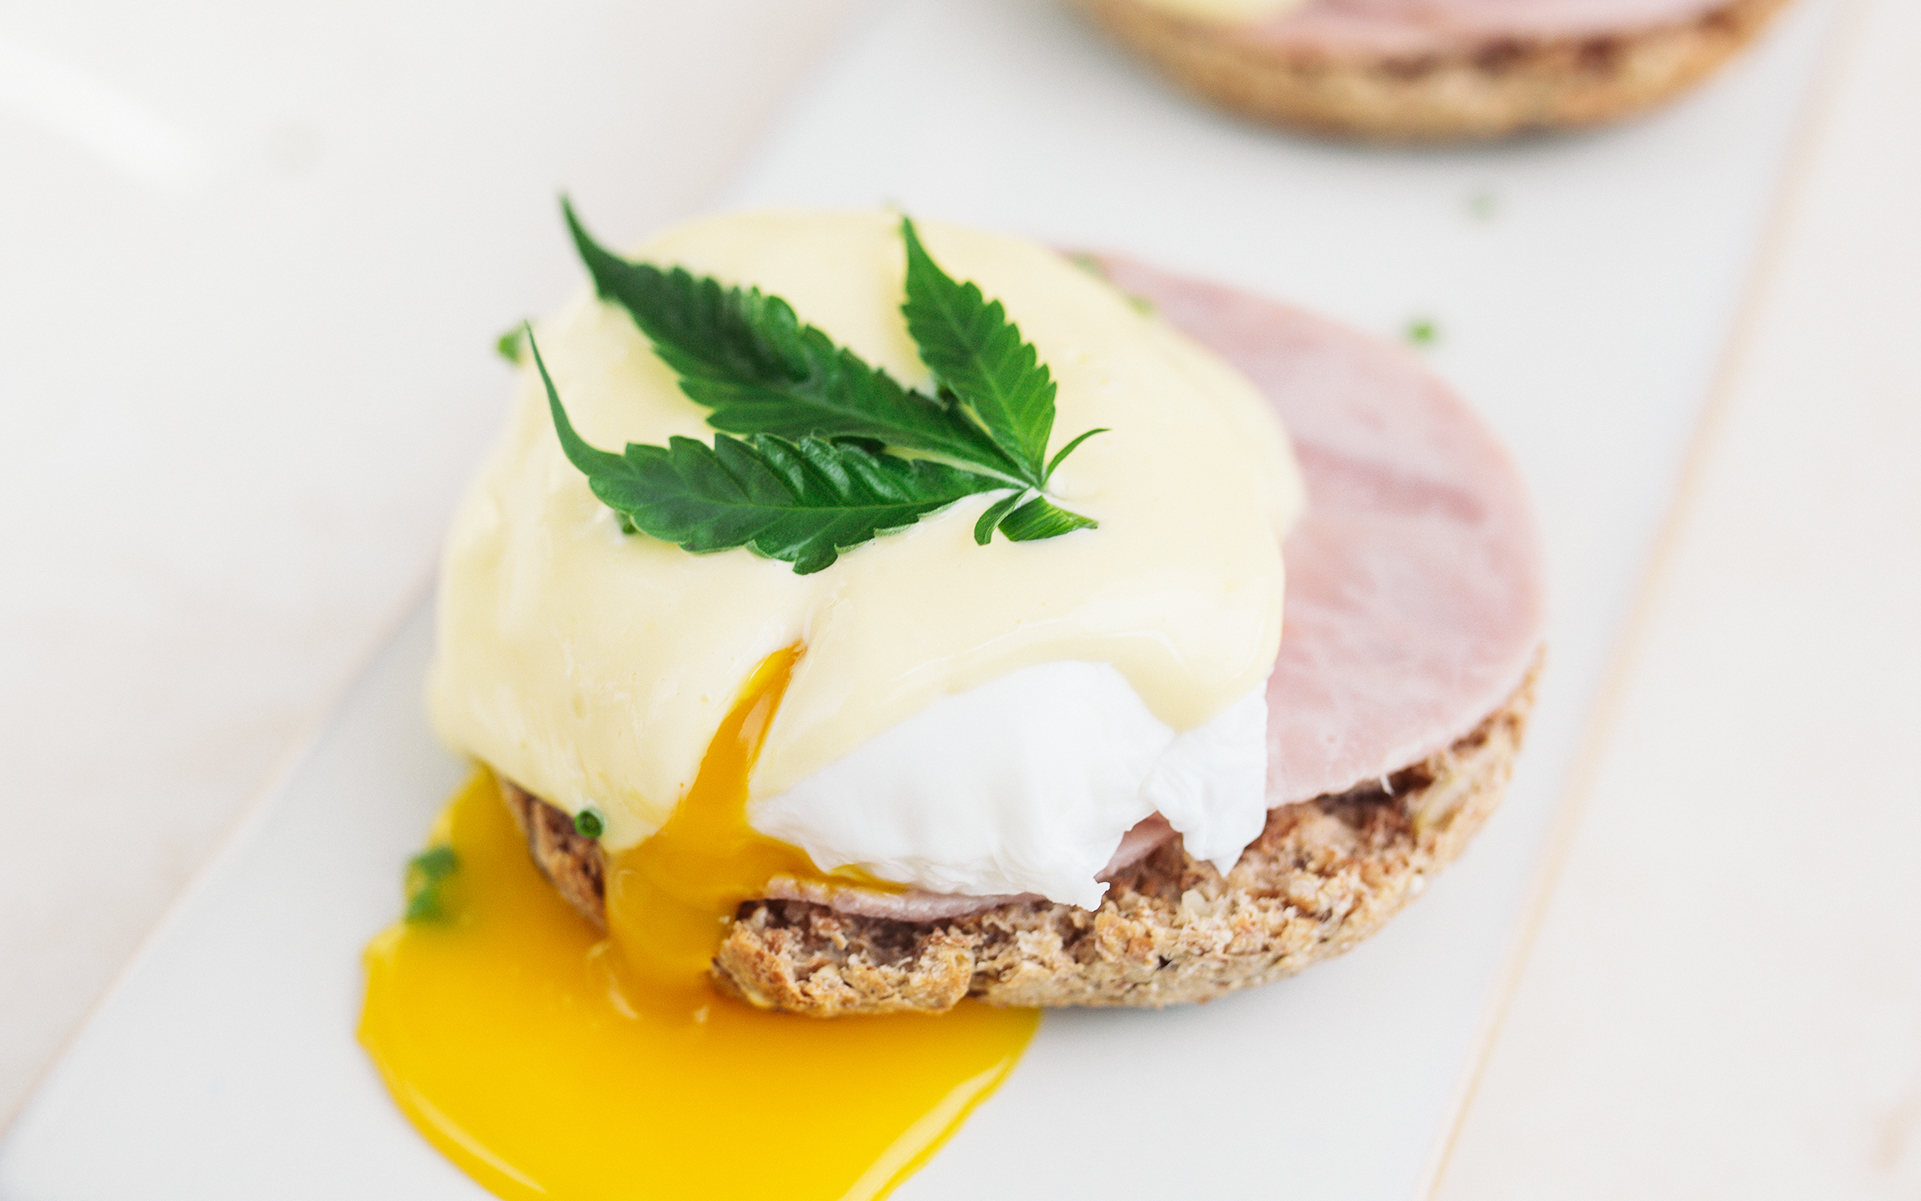 weed infused eggs benedict